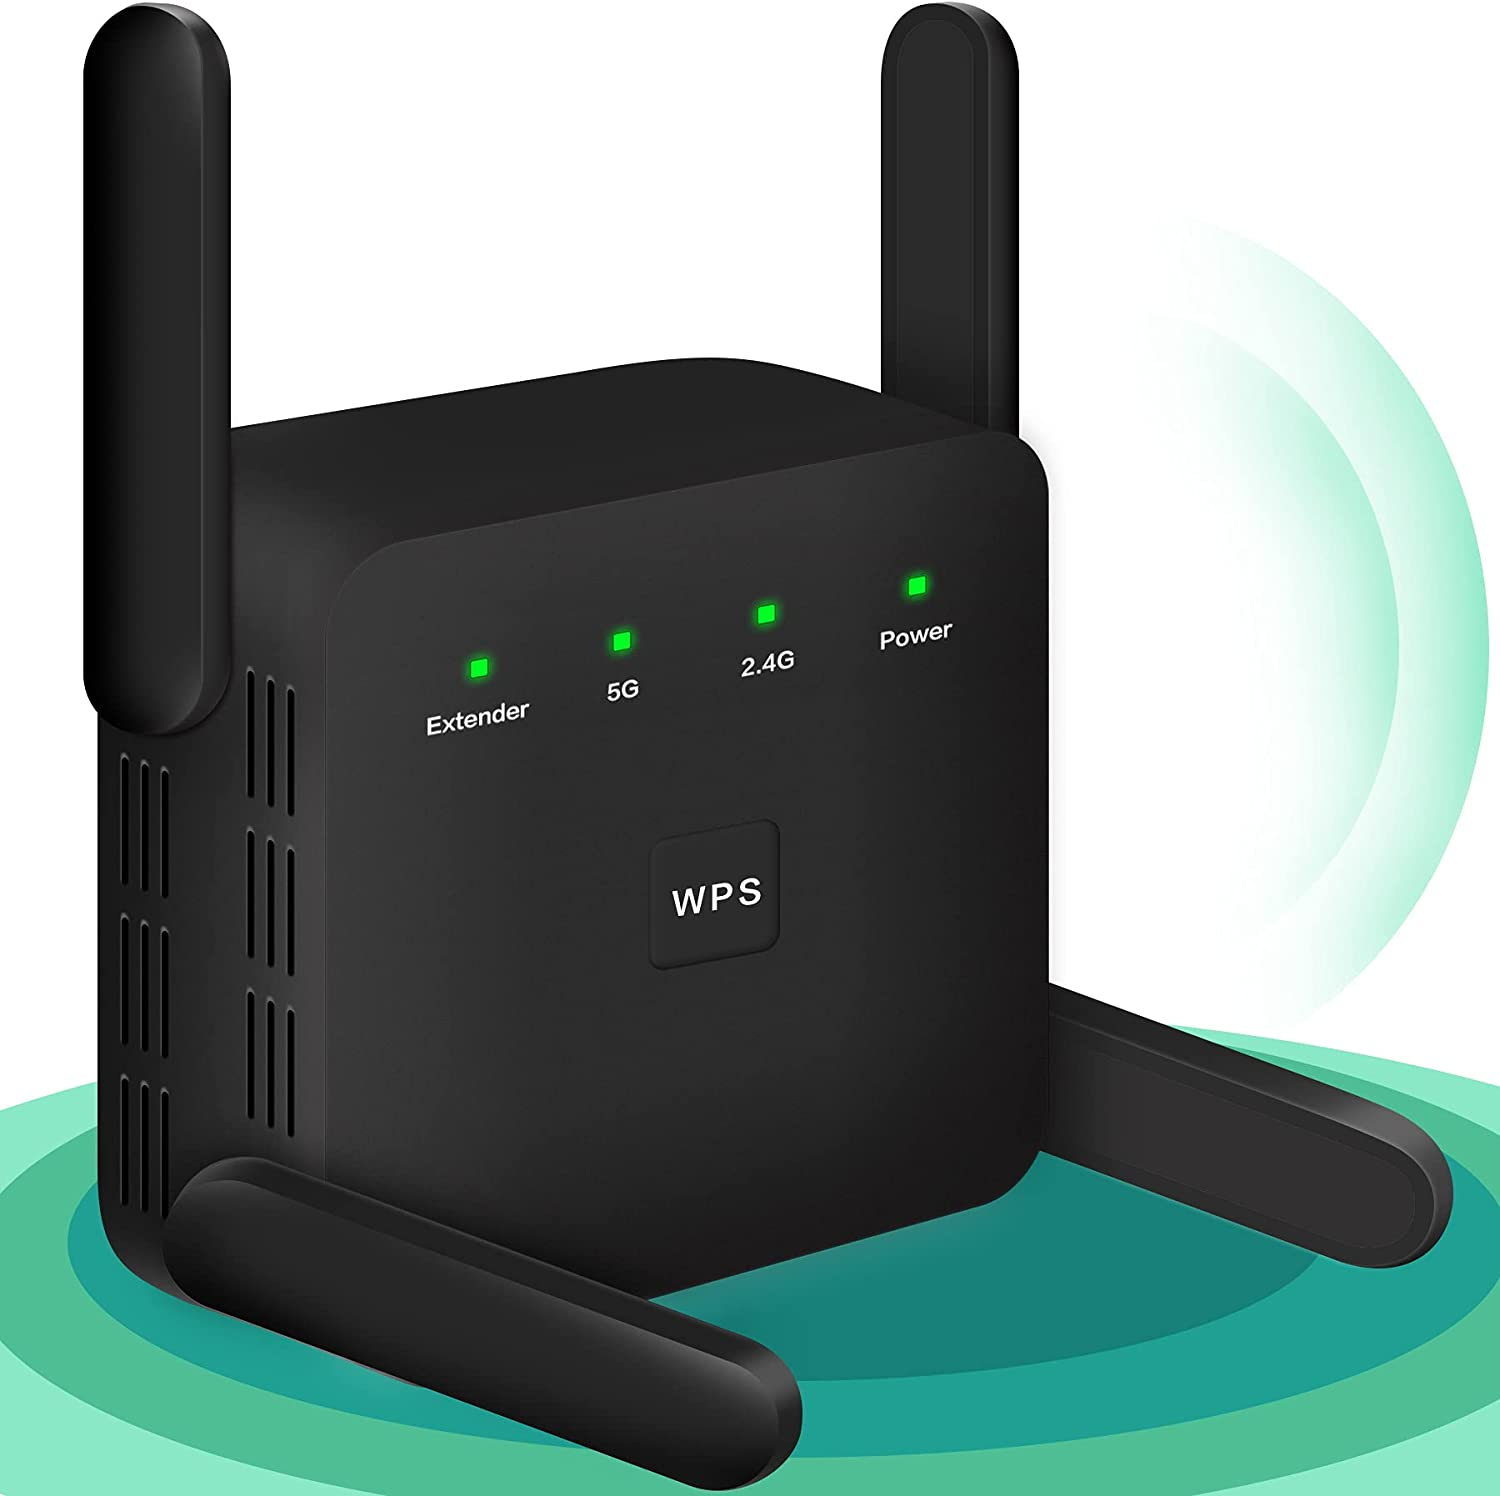 WiFi Booster, 1200Mbps WiFi Extender, 2.4G & 5G WiFi Extenders Signal Booster for Home, Stable Network WiFi Repeater Strong Internet Booster for WiFi Wireless WiFi Boosters for The House 4 Antennas